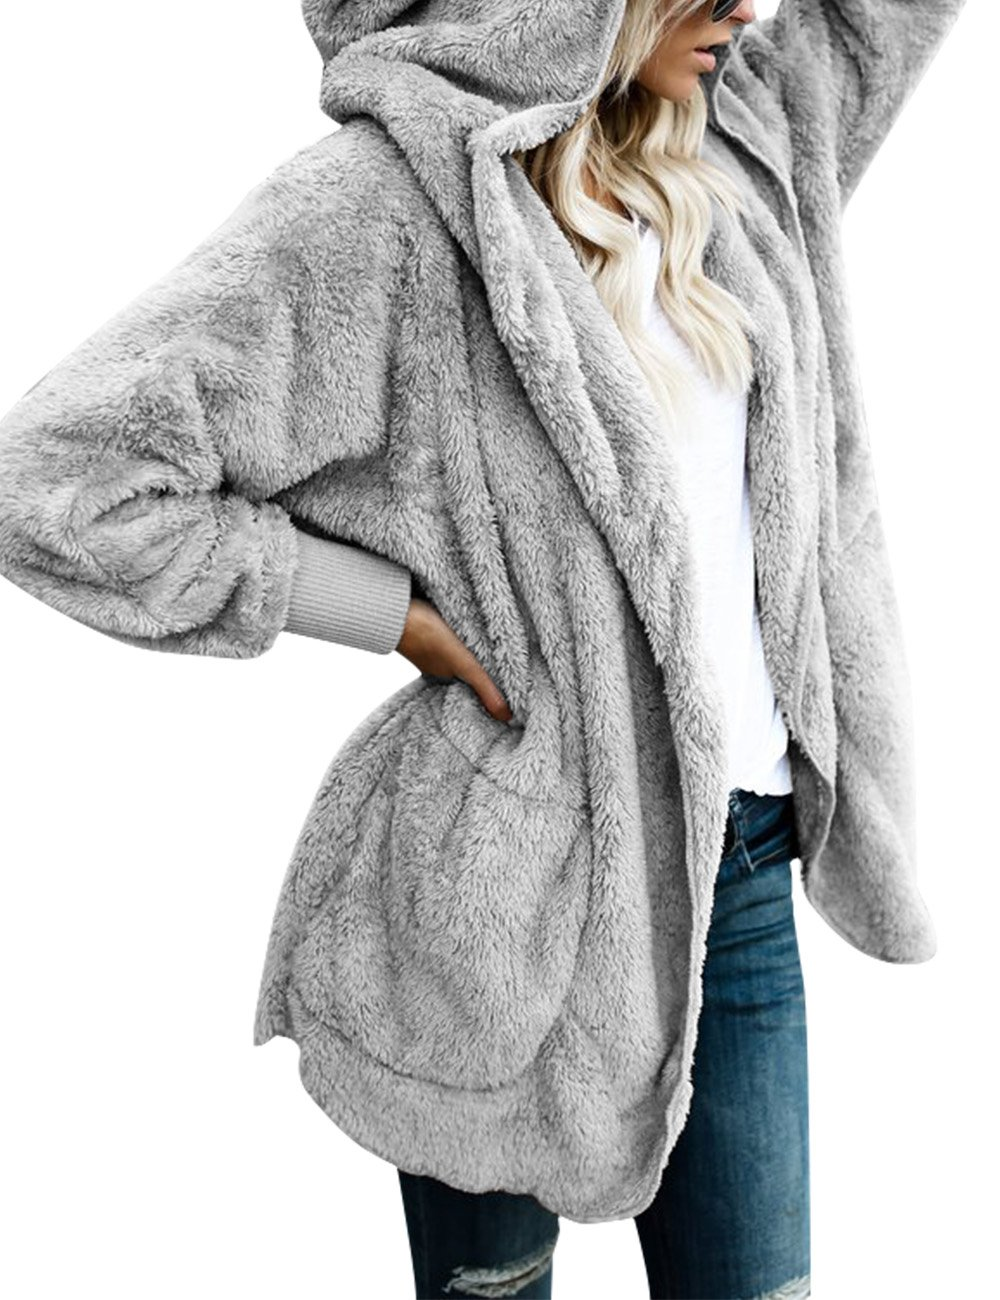 ACKKIA Women's Casual Draped Open Front Oversized Pockets Hooded Coat Cardigan Light Grey Size XX-Large (US 20-22)